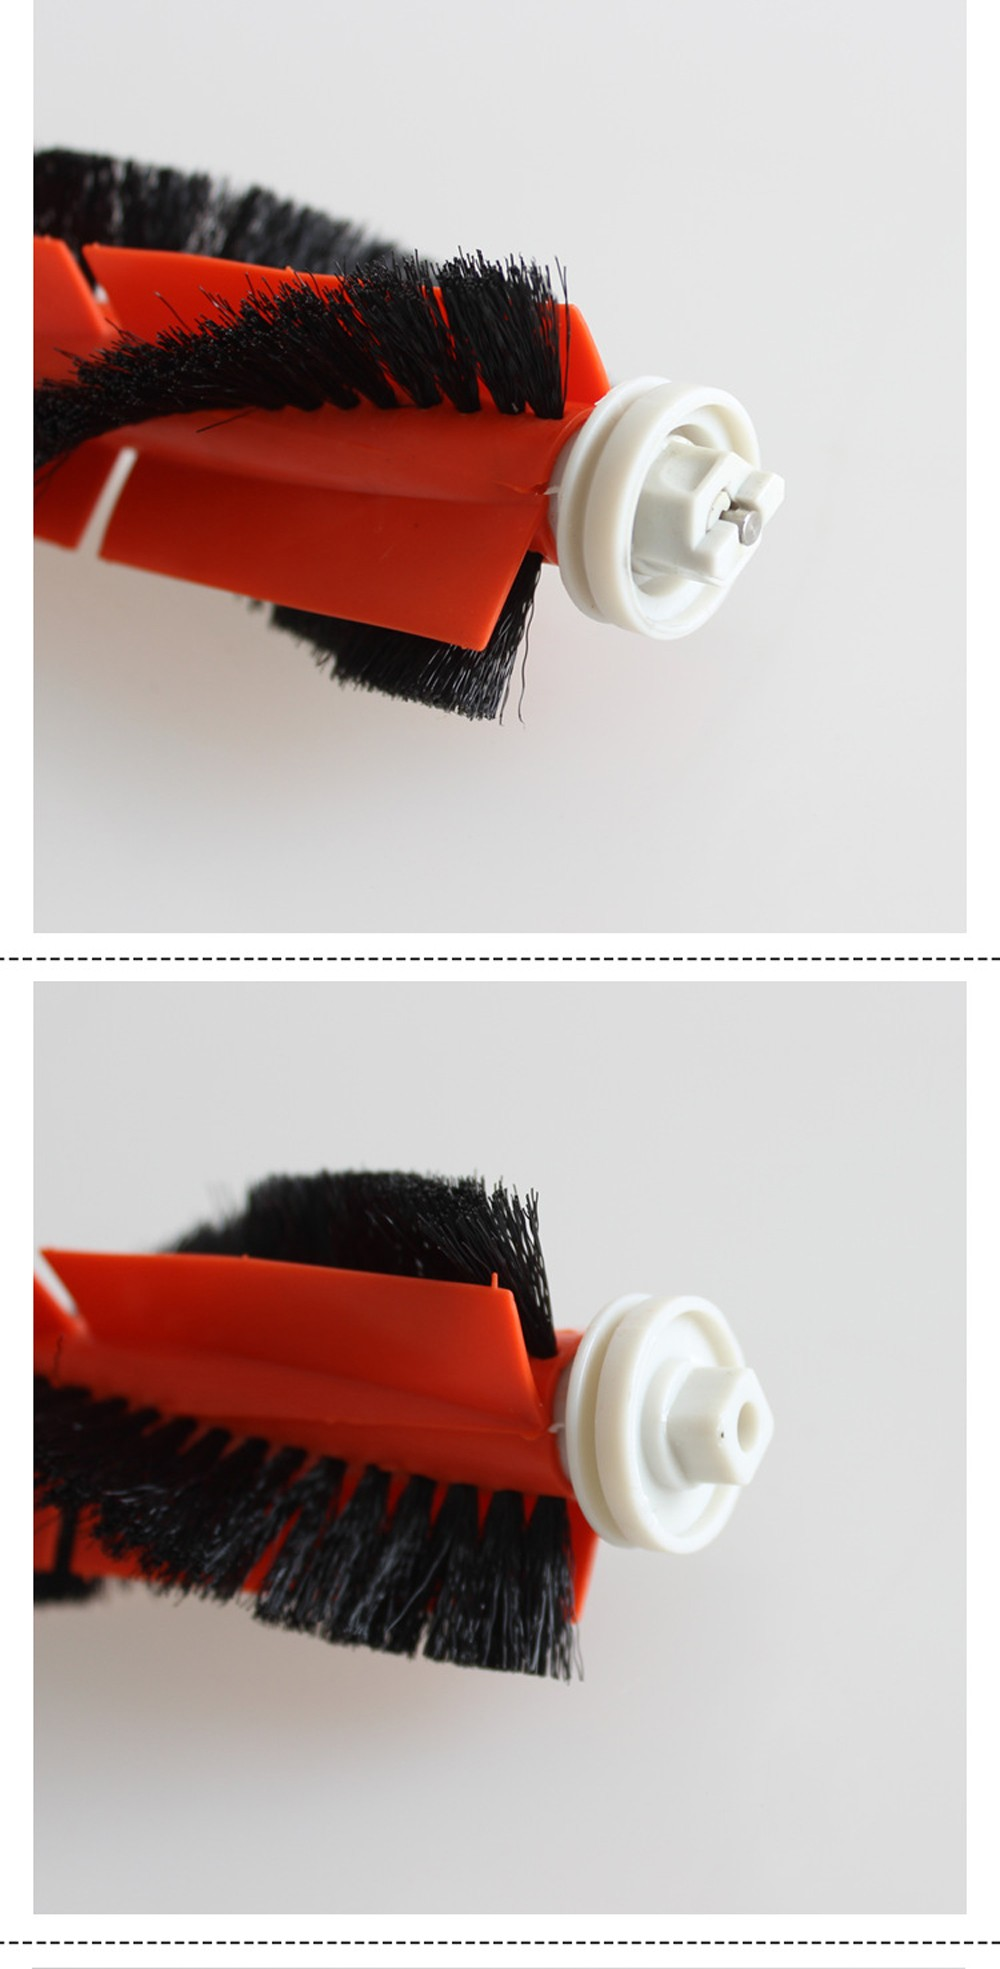 1406 Sweeper Accessories Set Side Rolling Brush Filter Side Brush Cleaning Tool  for Mijia 1S Stone S52 / S51 / S50 - Multi